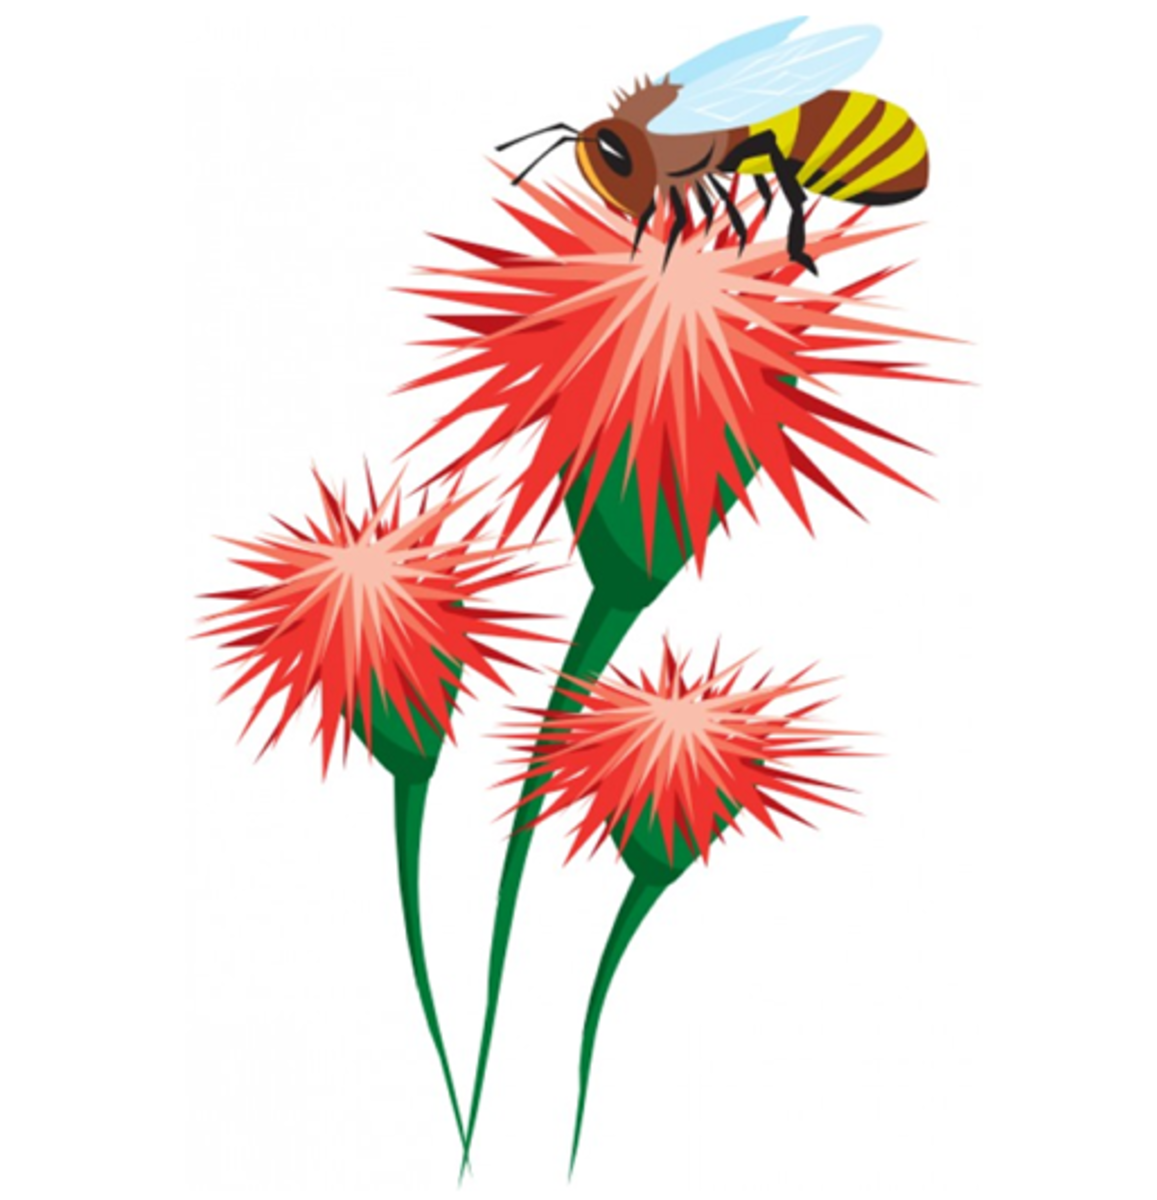 Three Red Thistle Flowers with a Bee